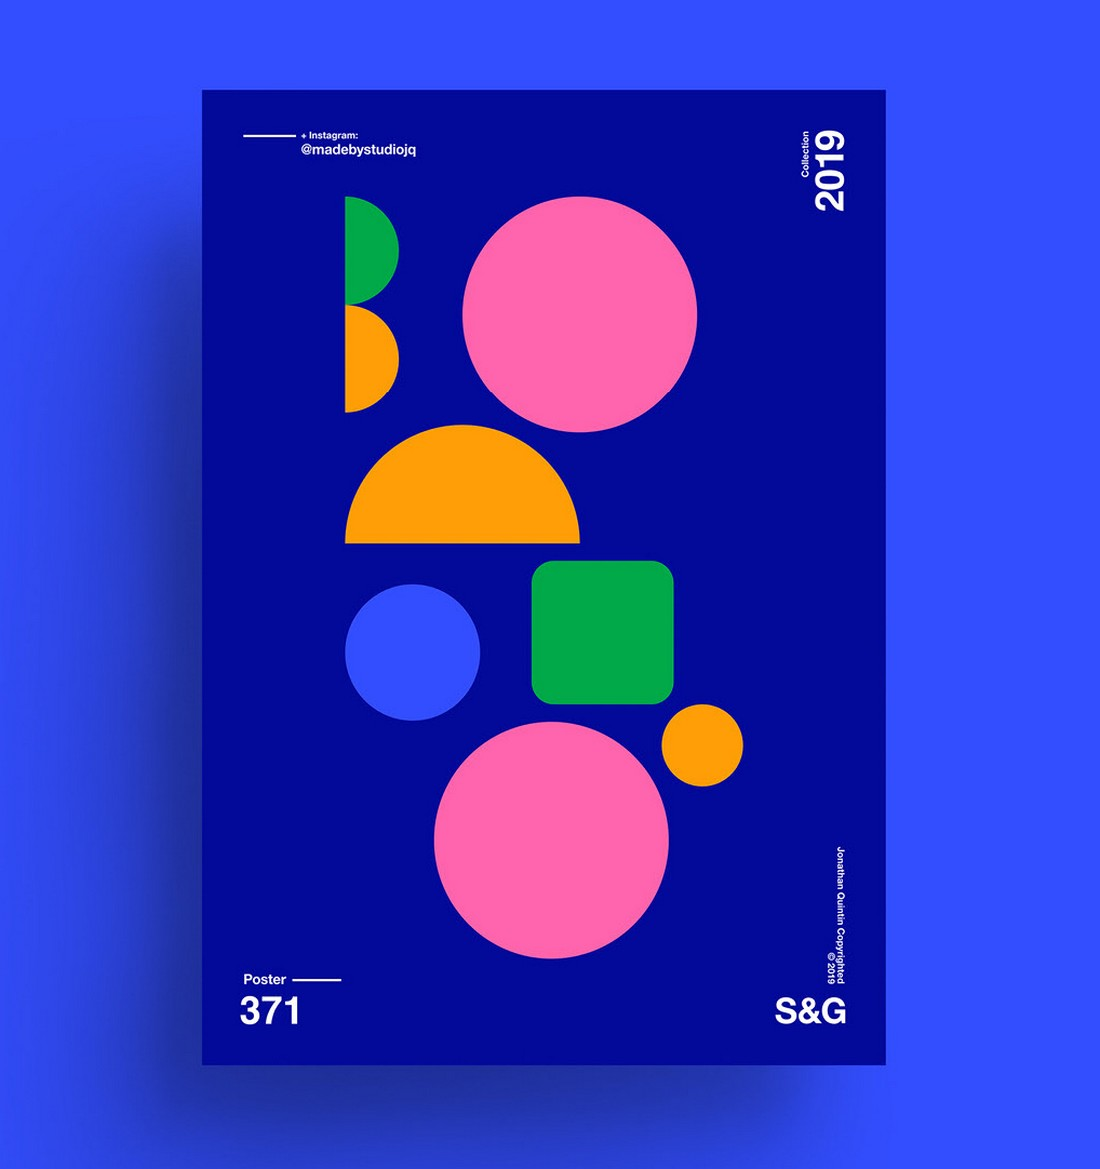 Throw-Some-Shapes-poster 10 Minimal Poster Design Examples (+10 Templates) design tips